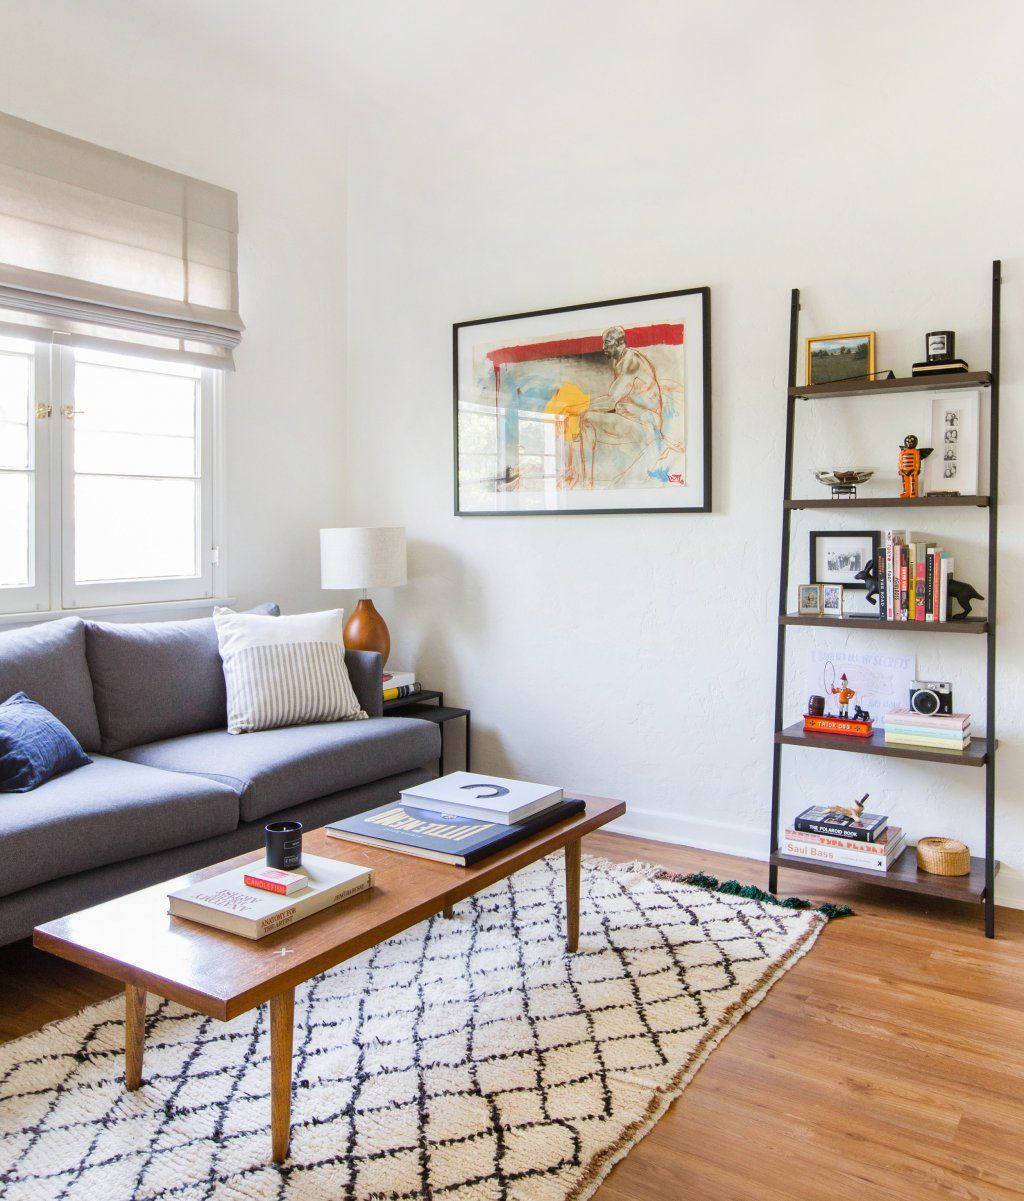 Sara's Office Reveal (With images) | Home decor, Living ...